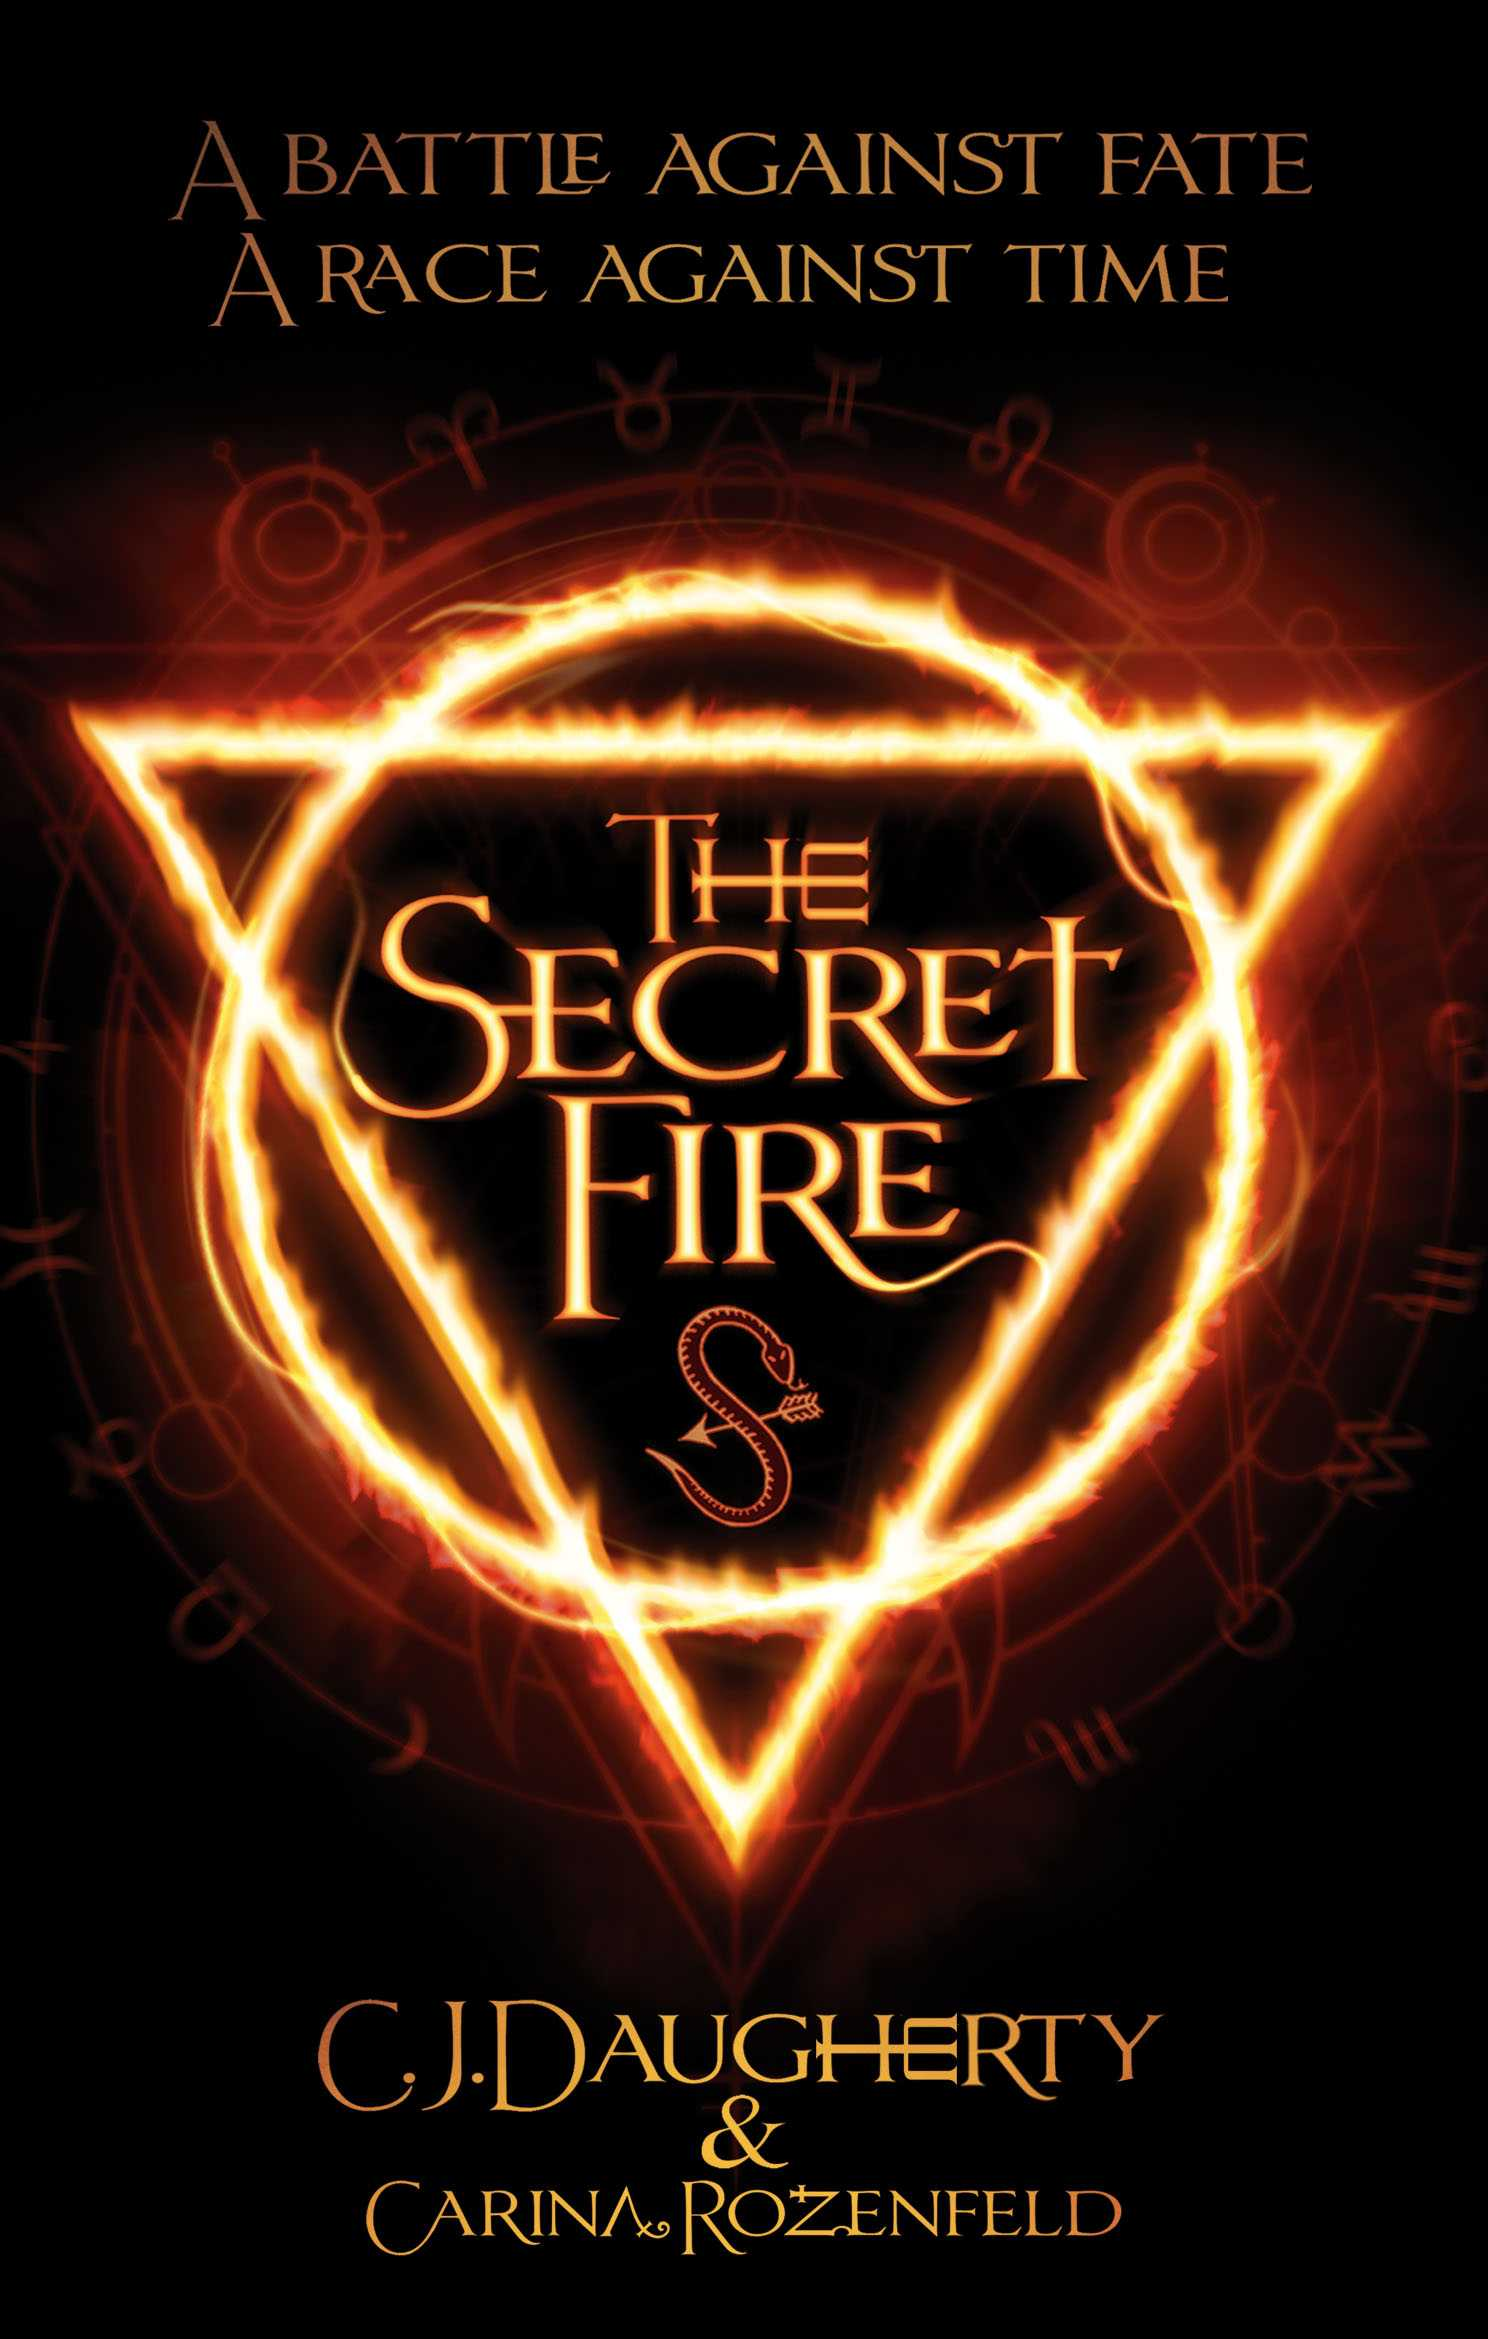 Book Review: The Secret Fire - C.J. Daugherty & Carina Rozenfeld | The Secret Fire